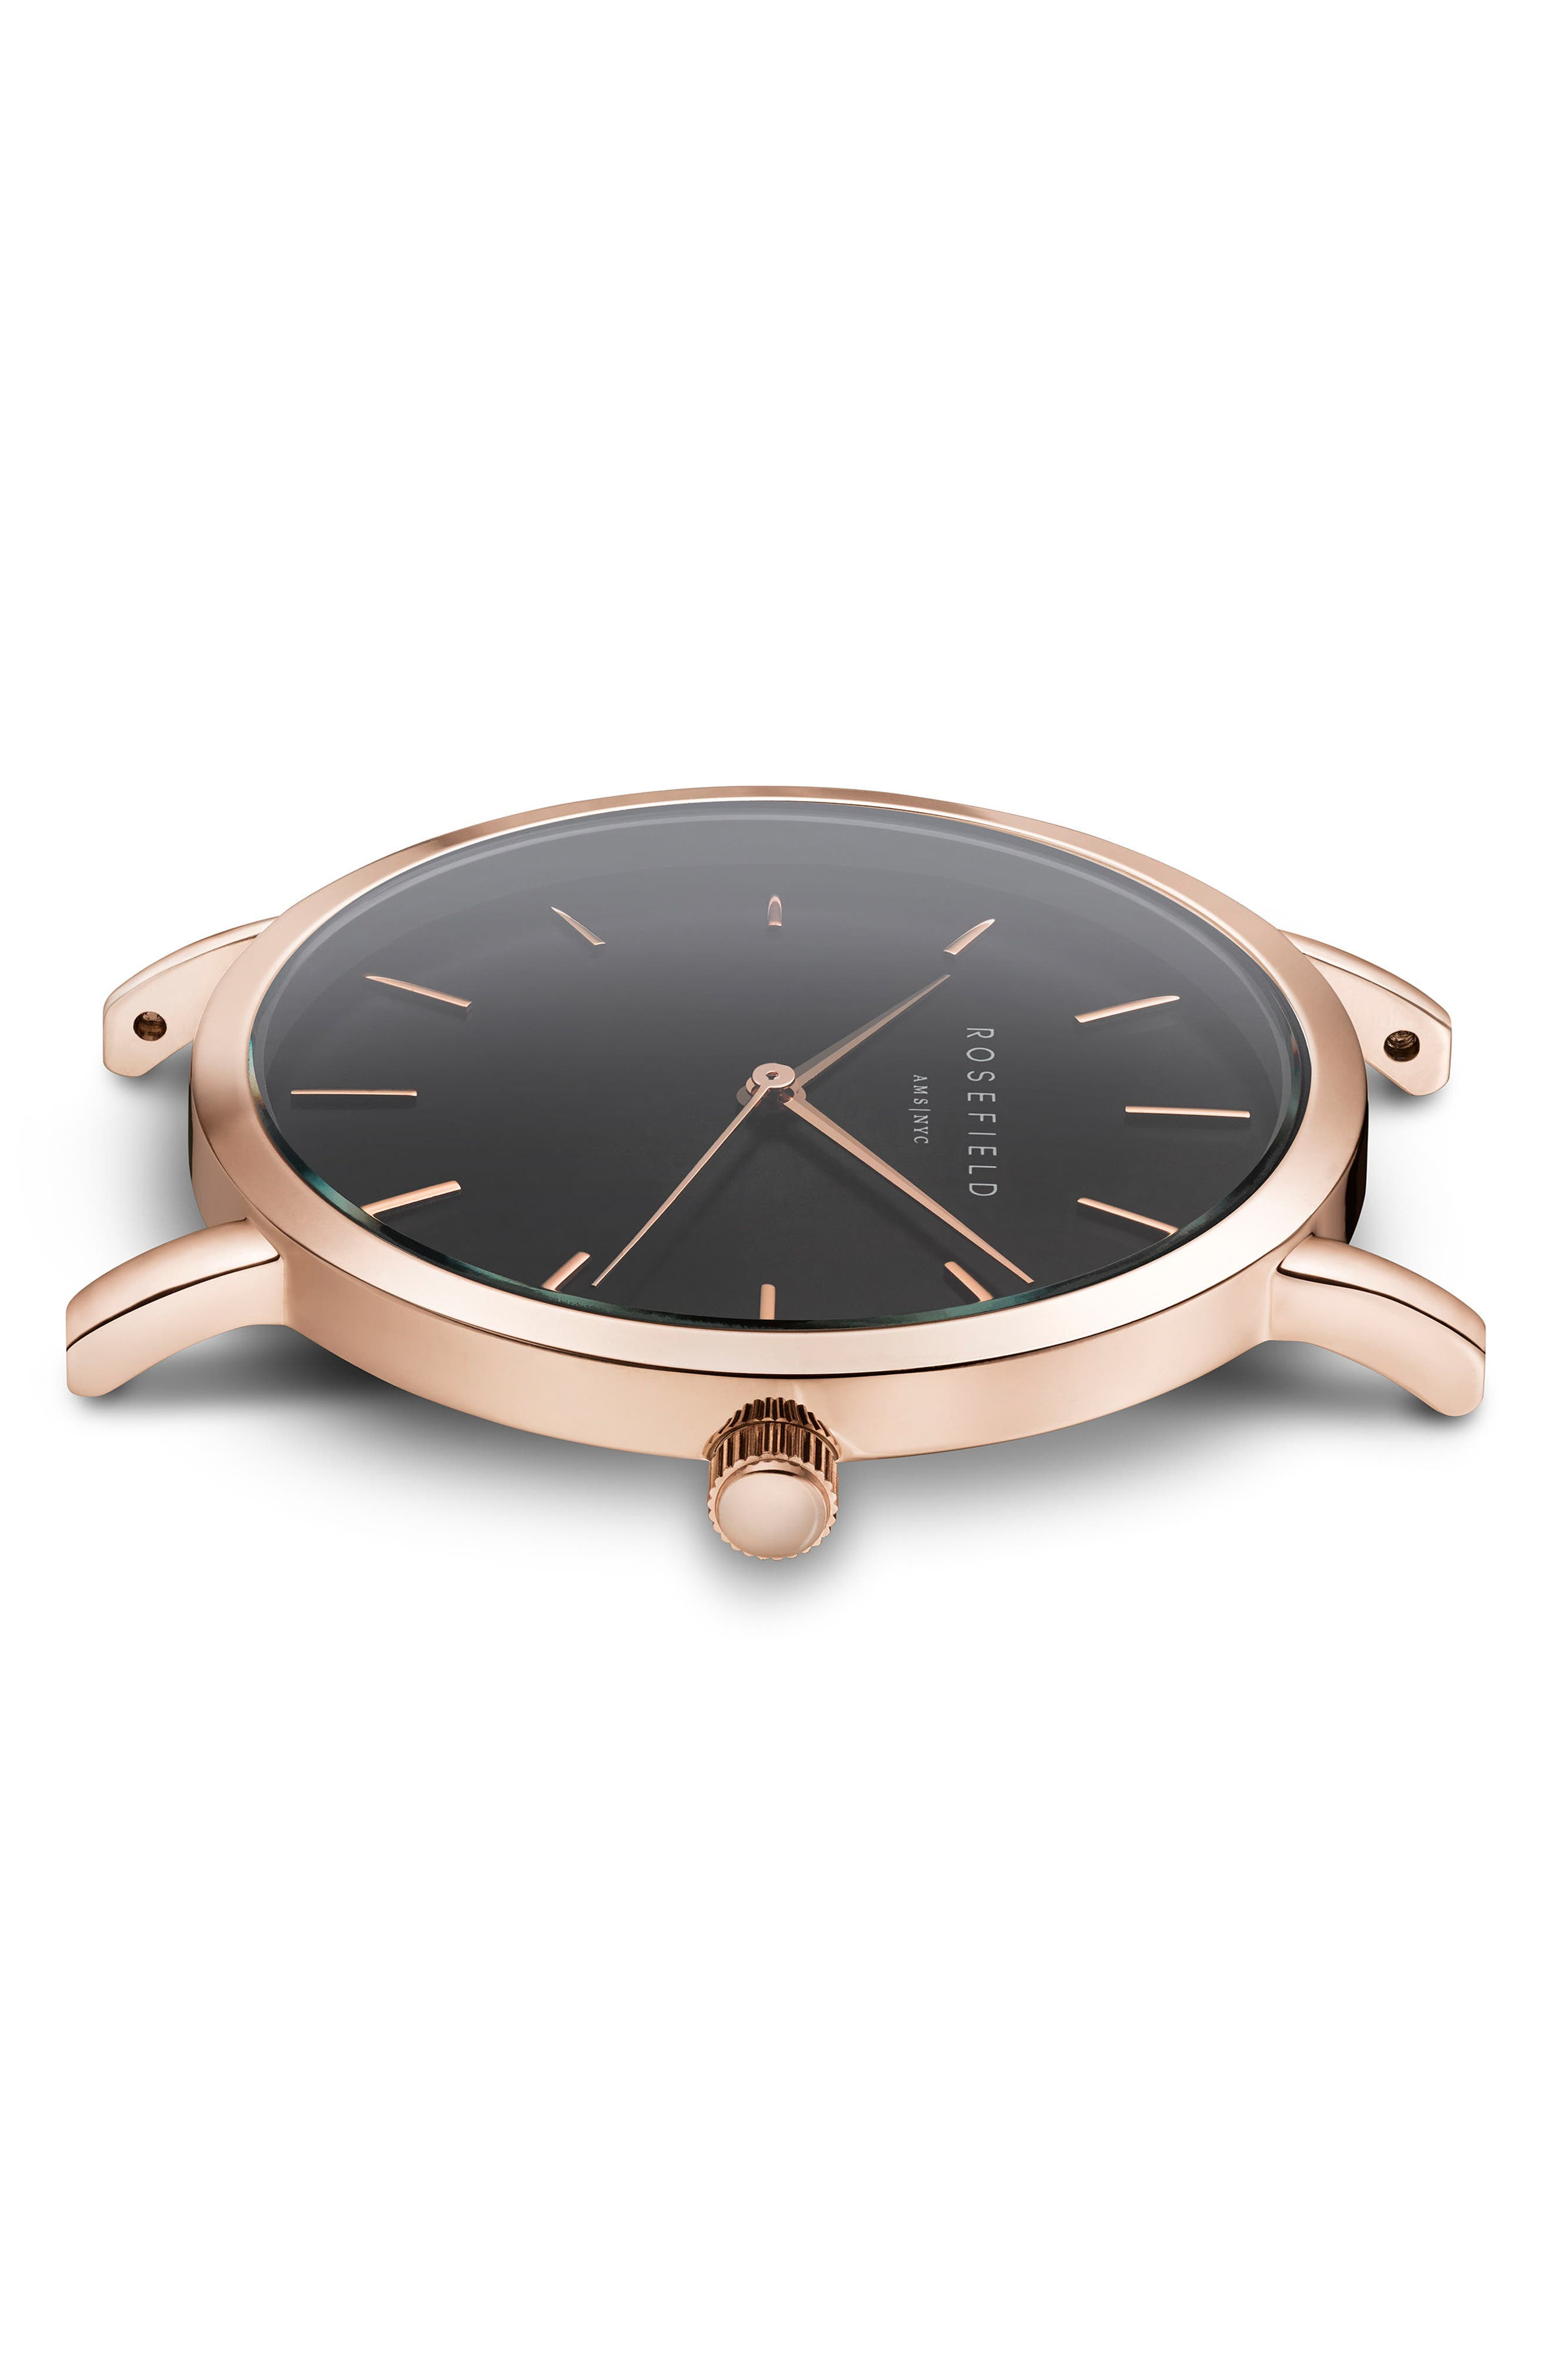 Tribeca Mesh Strap Watch, 33mm,                             Alternate thumbnail 3, color,                             ROSE GOLD/ BLACK/ ROSE GOLD